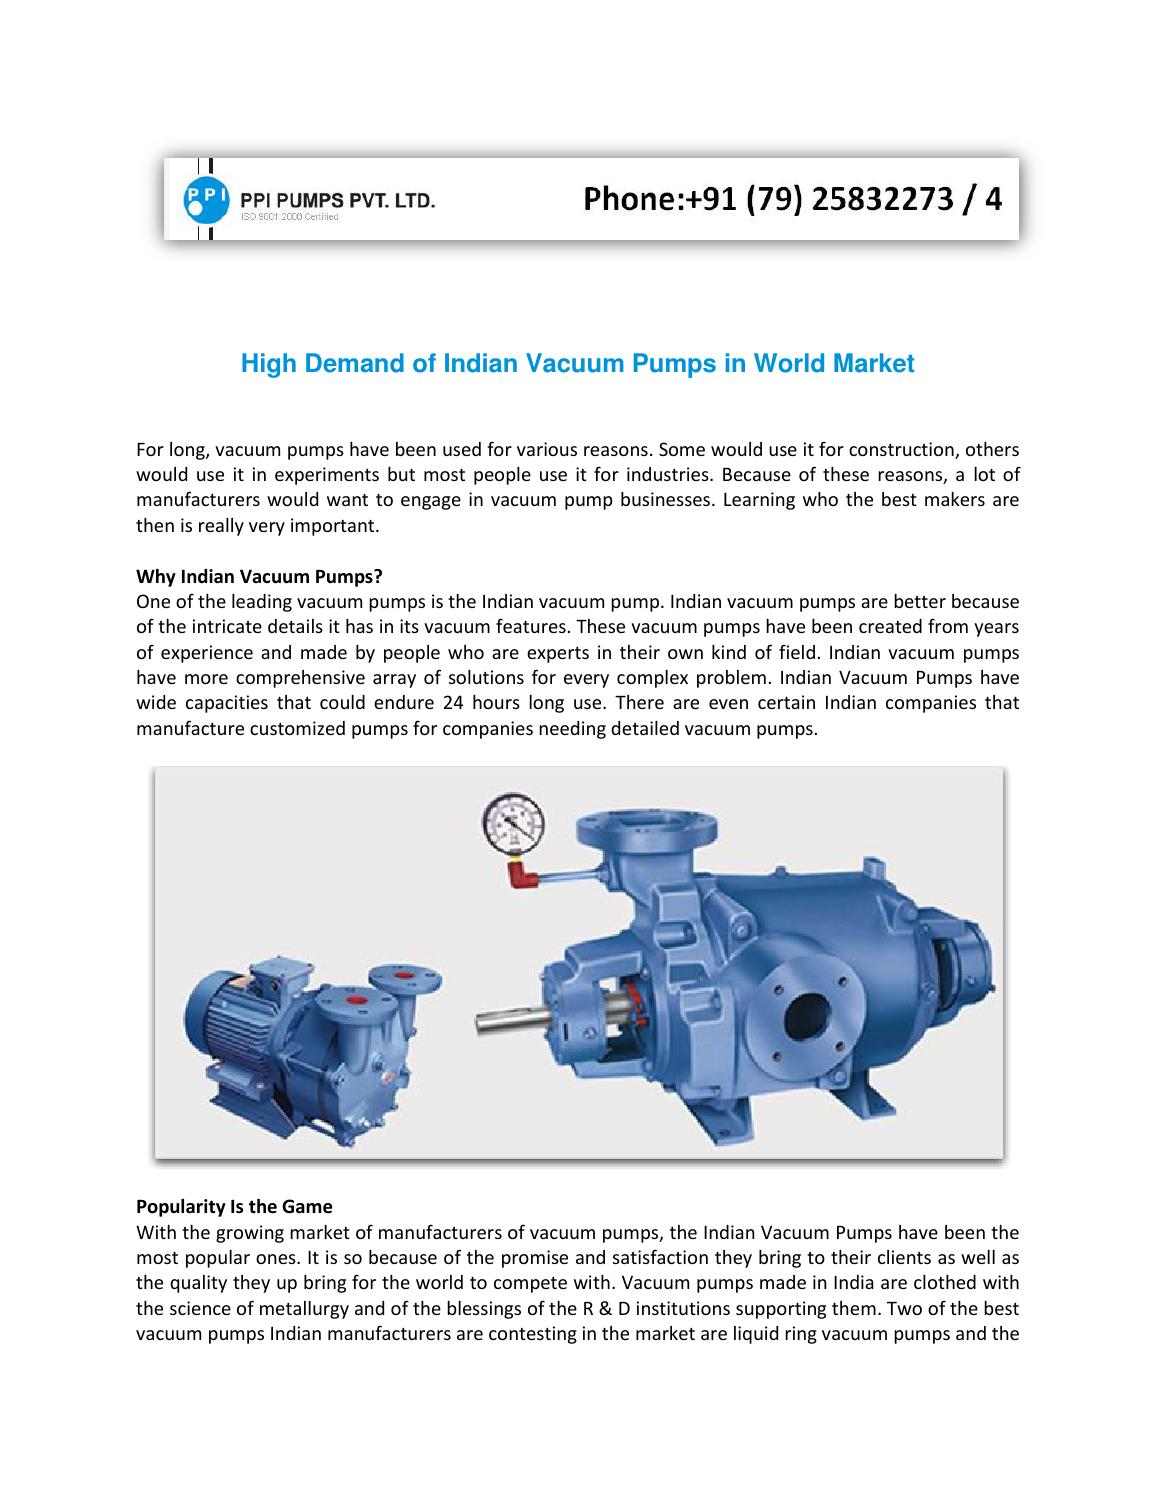 High Demand Of Indian Vacuum Pumps In World Market By Ppipumps Issuu Pump Diagram